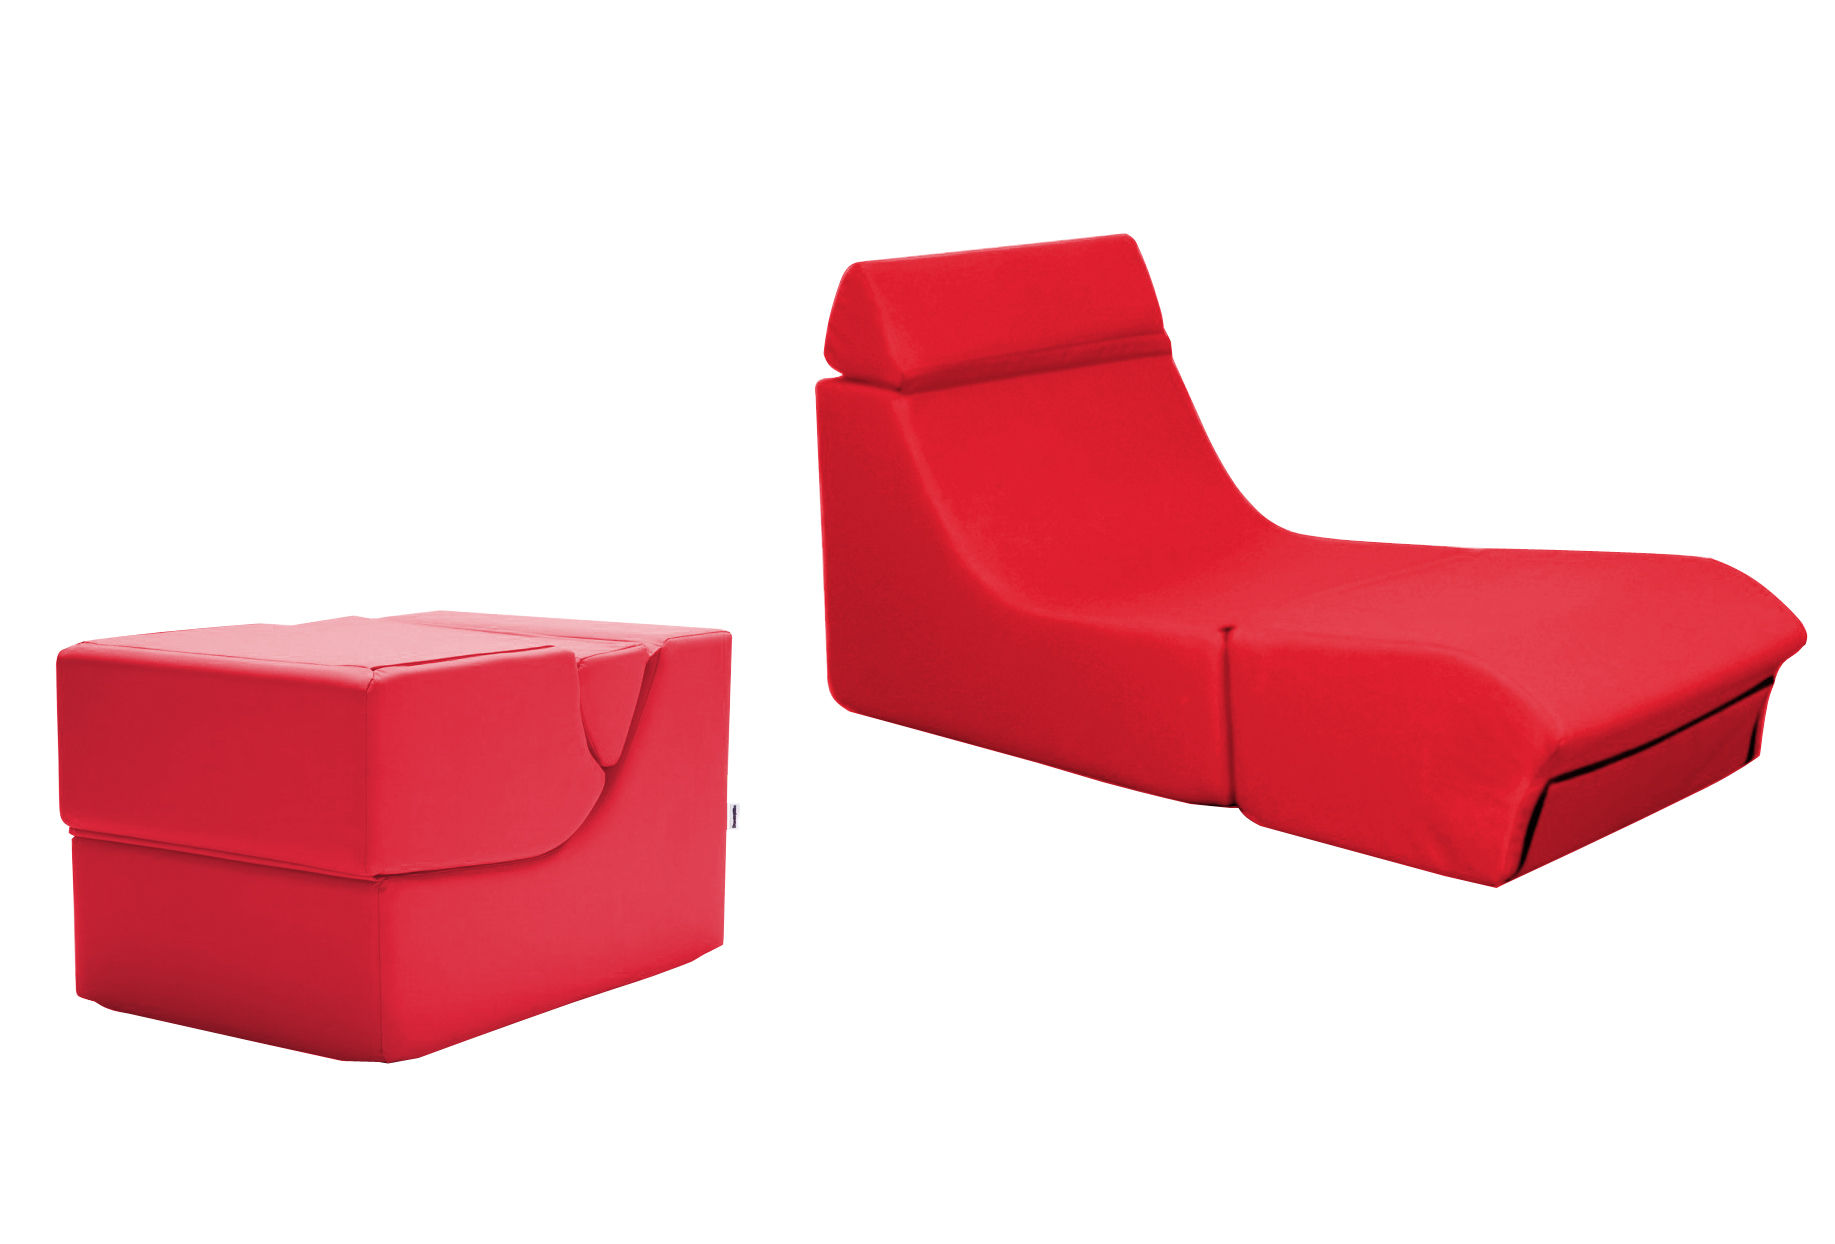 chauffeuse kube pouf modulable rouge dunlopillo made in design. Black Bedroom Furniture Sets. Home Design Ideas